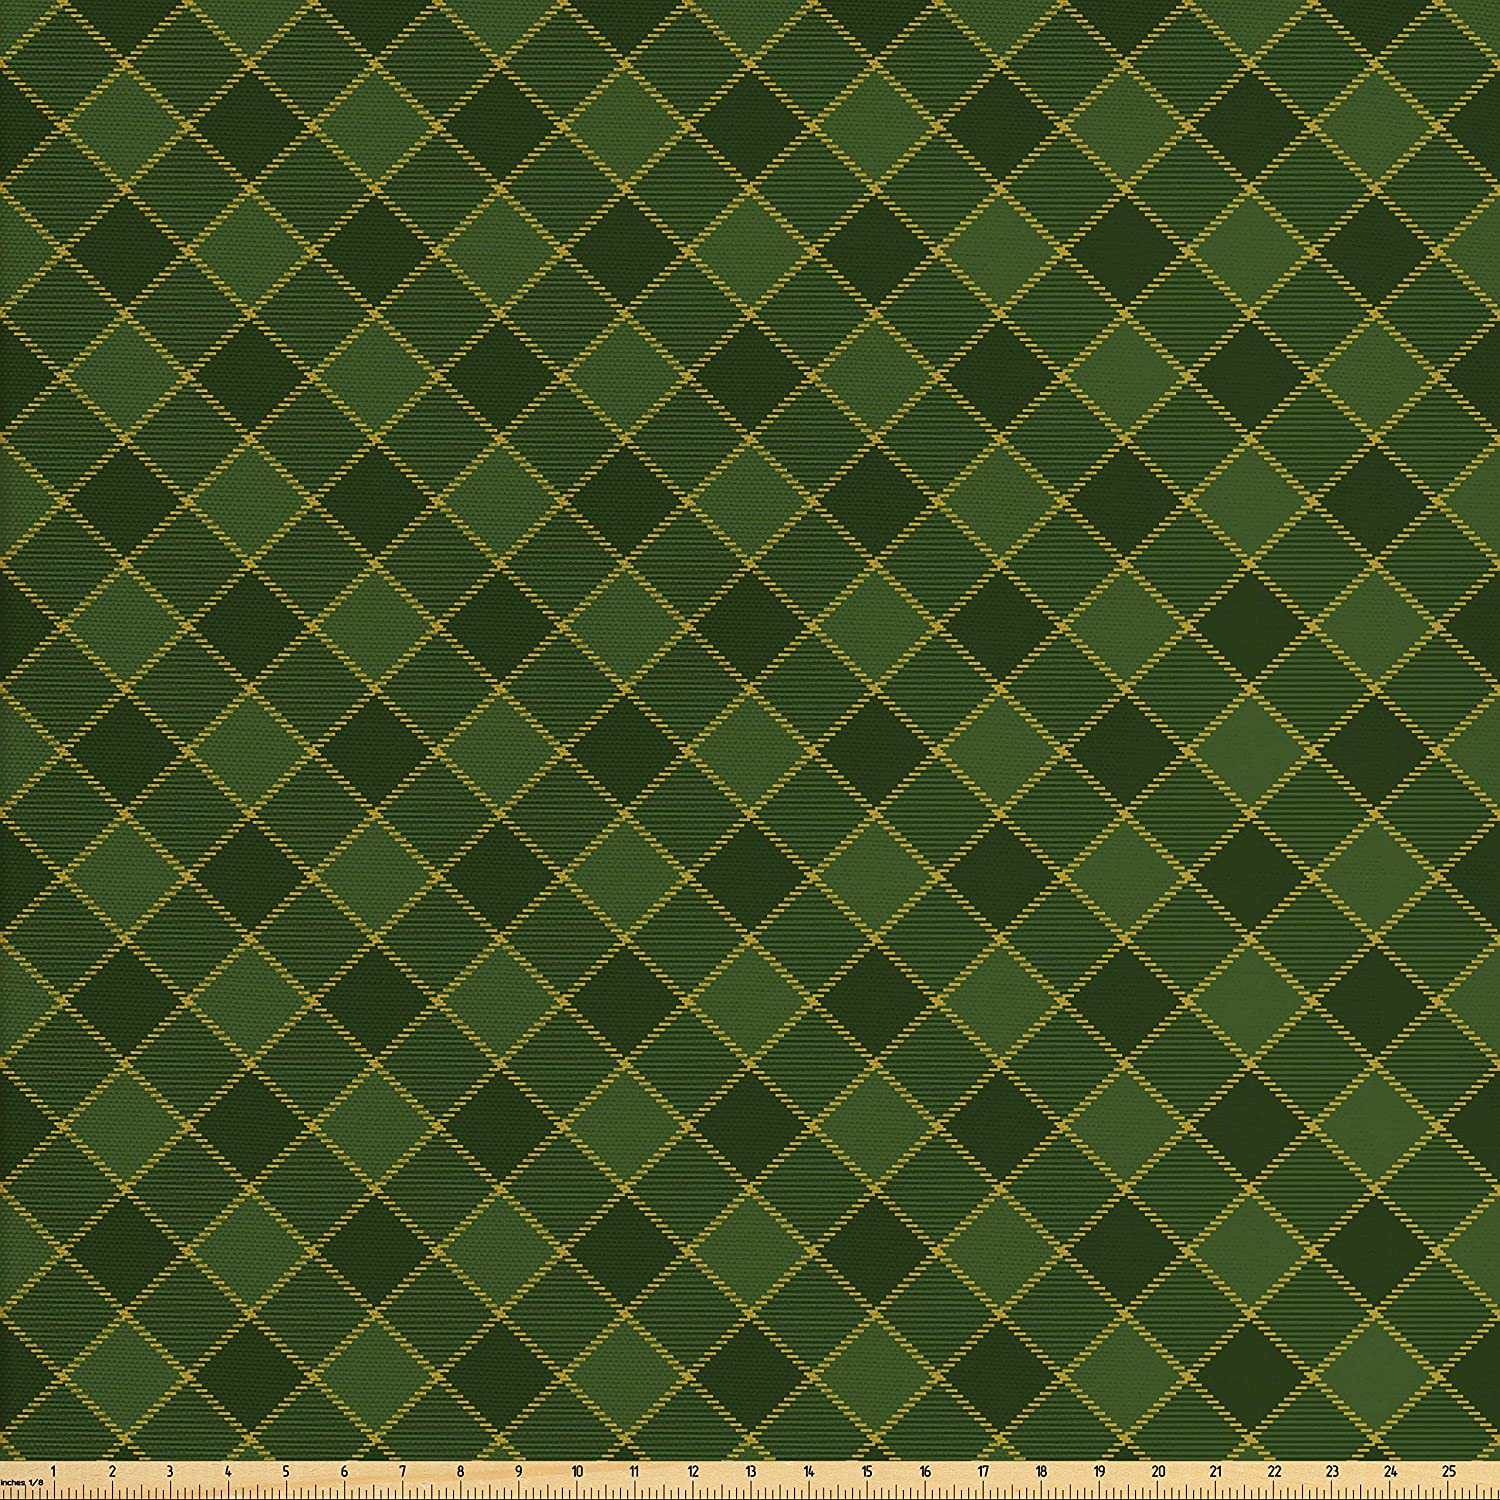 Lunarable Green Fabric by The Yard, Traditional Old Fashioned Argyle Pattern Retro Style Plaid, Decorative Fabric for Upholstery and Home Accents, Hunter Green Forrest Green Yellow